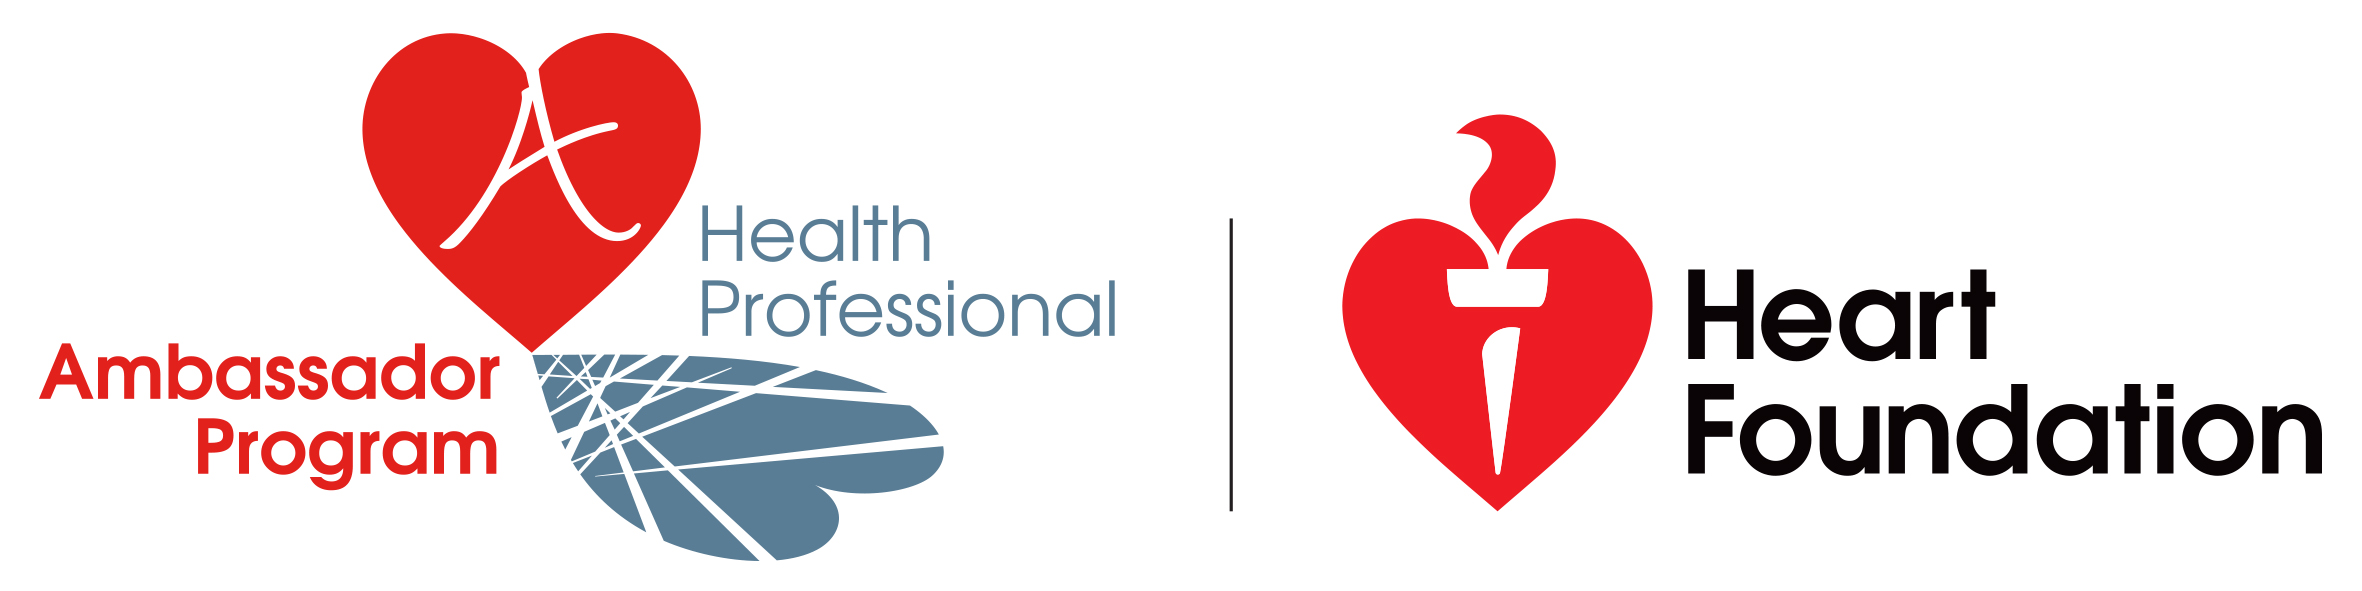 Heart Foundation Health Professional Ambassador 2020